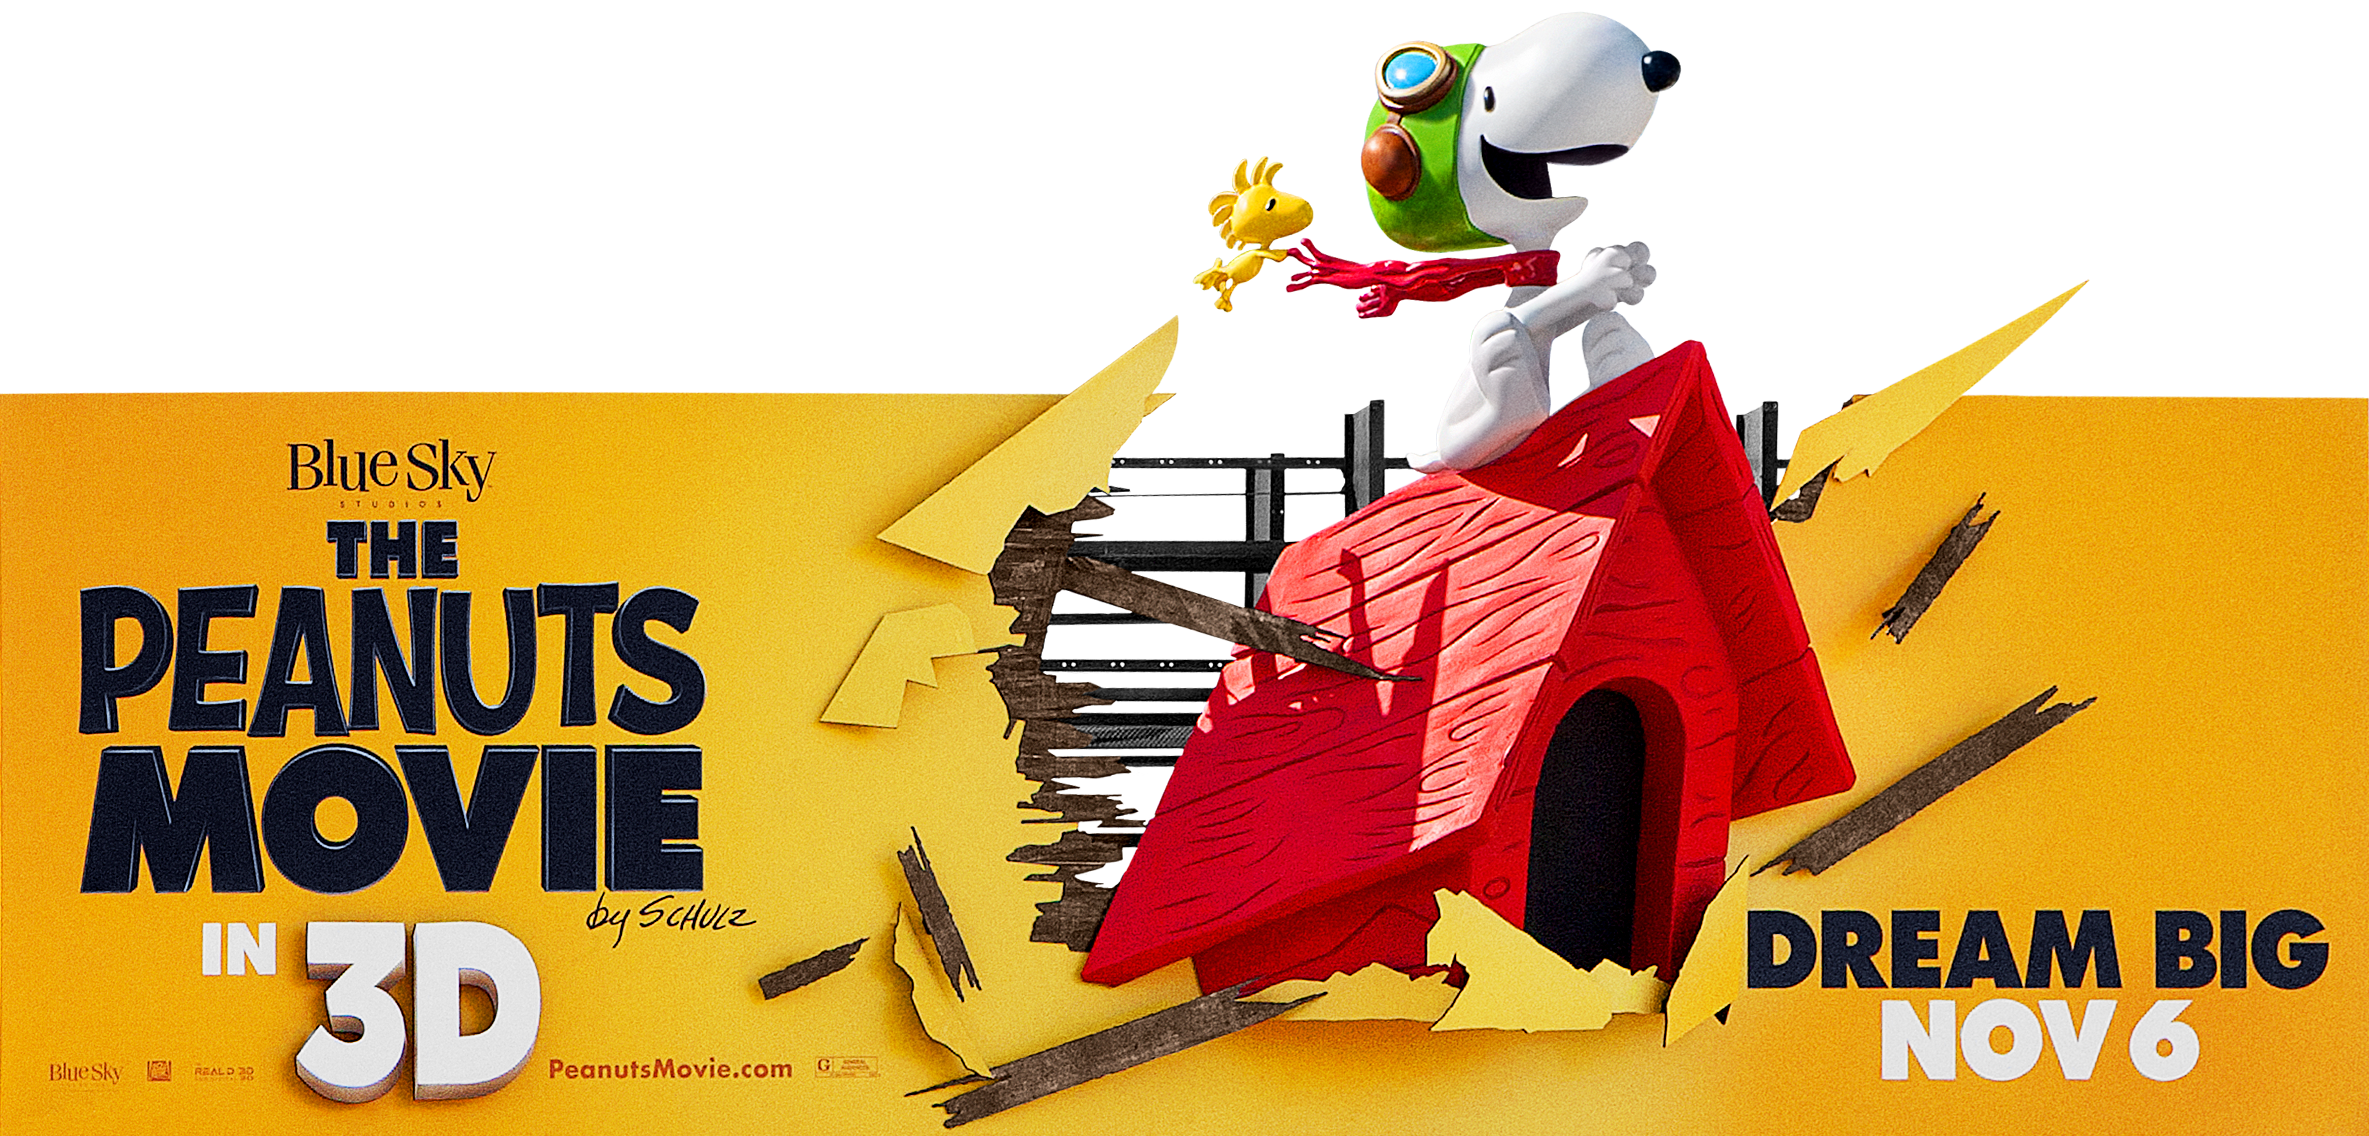 The Peanuts Movie | 3D Billboard Design, Finishing & Illustration